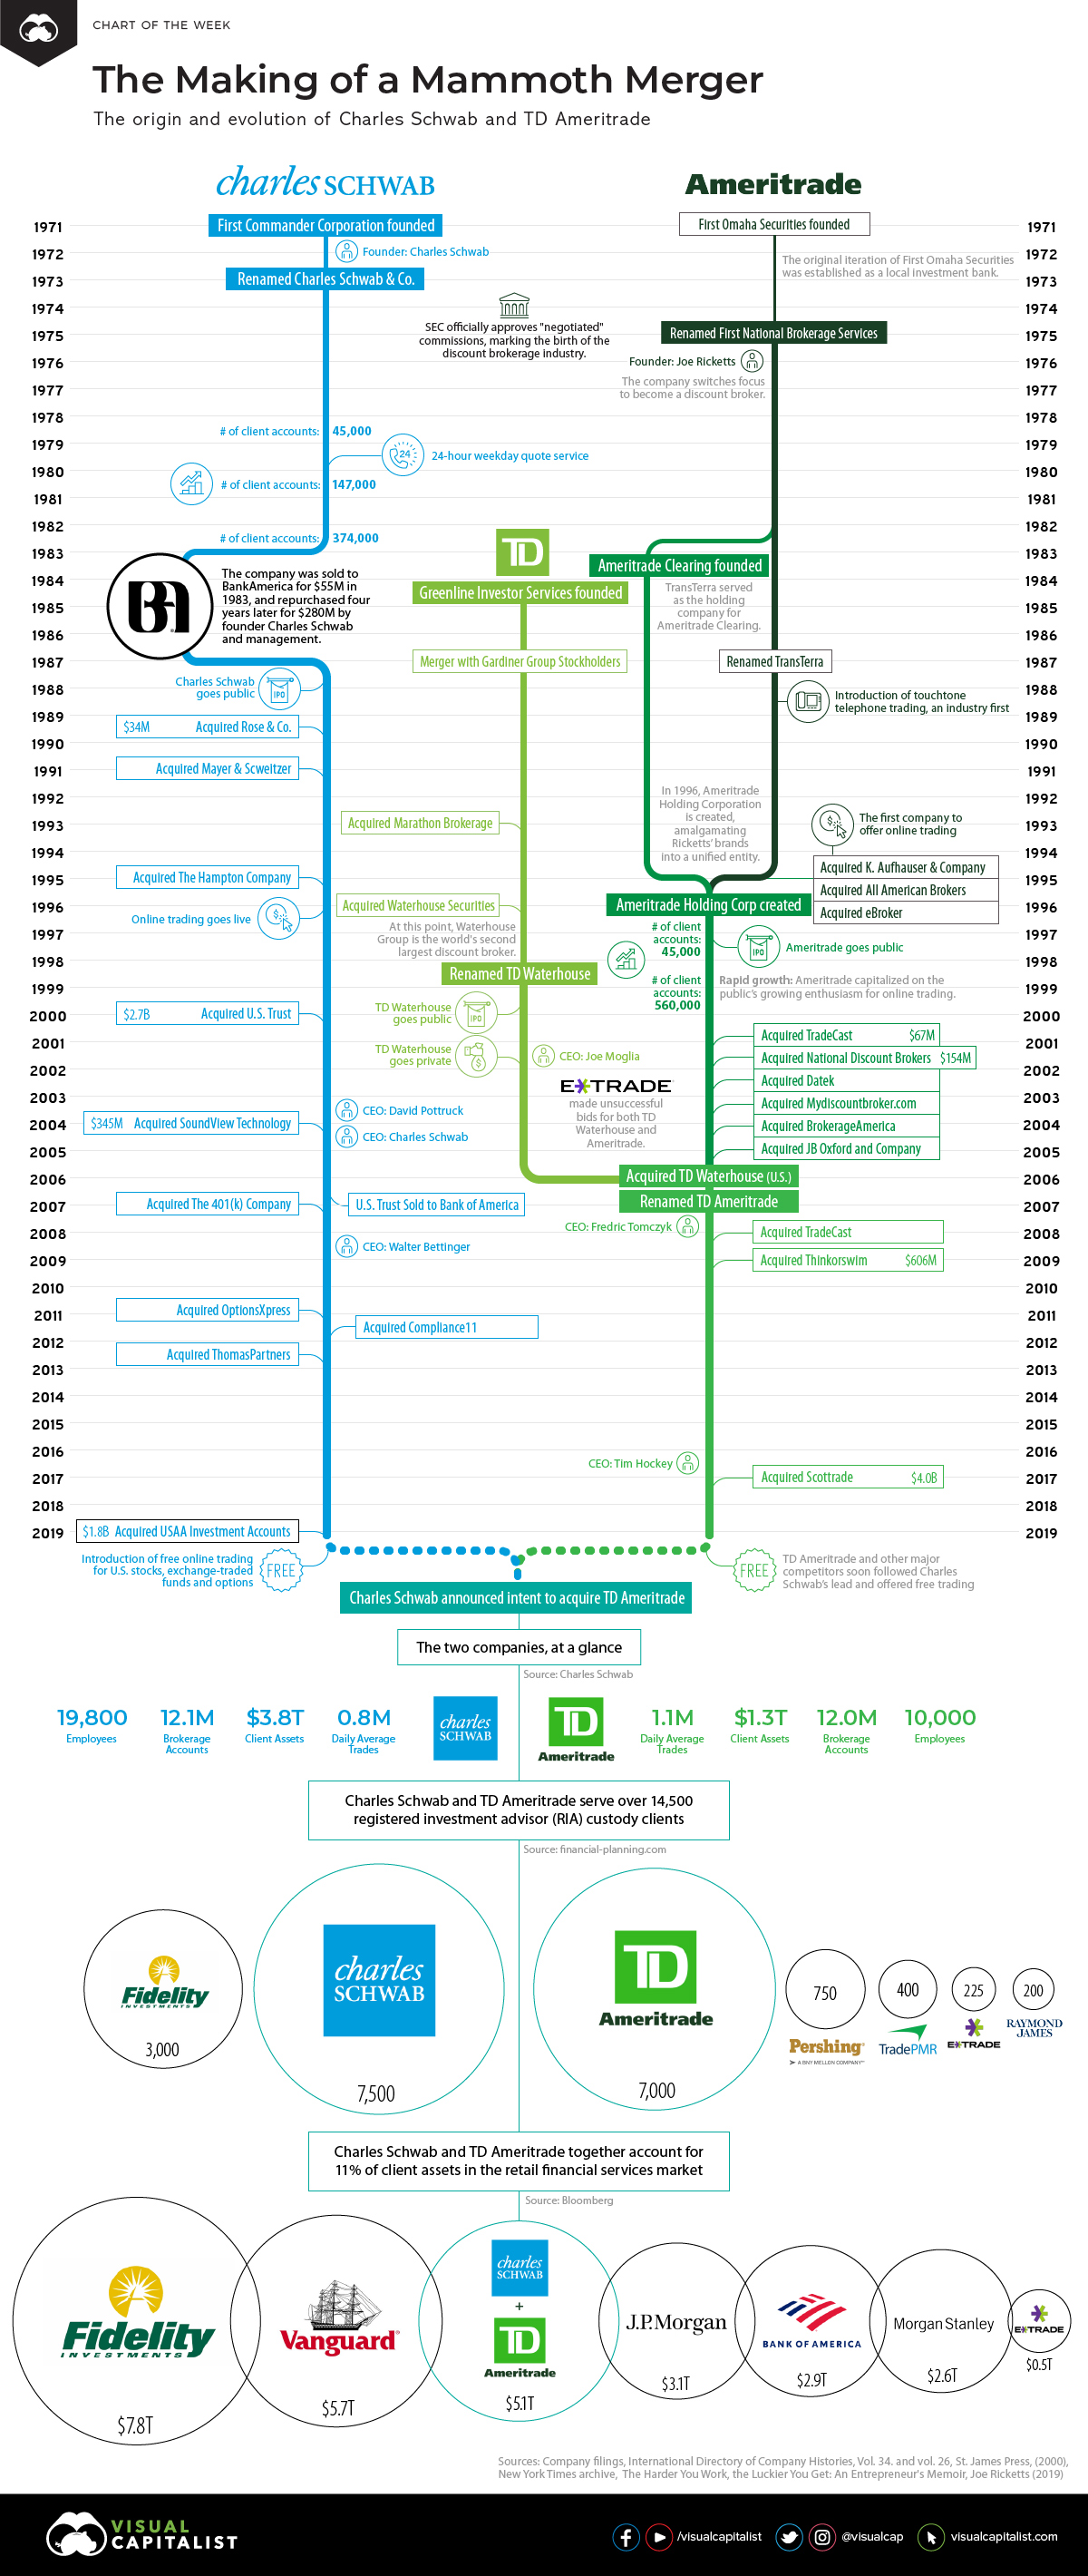 The Making of a Mammoth Merger: Charles Schwab and TD Ameritrade